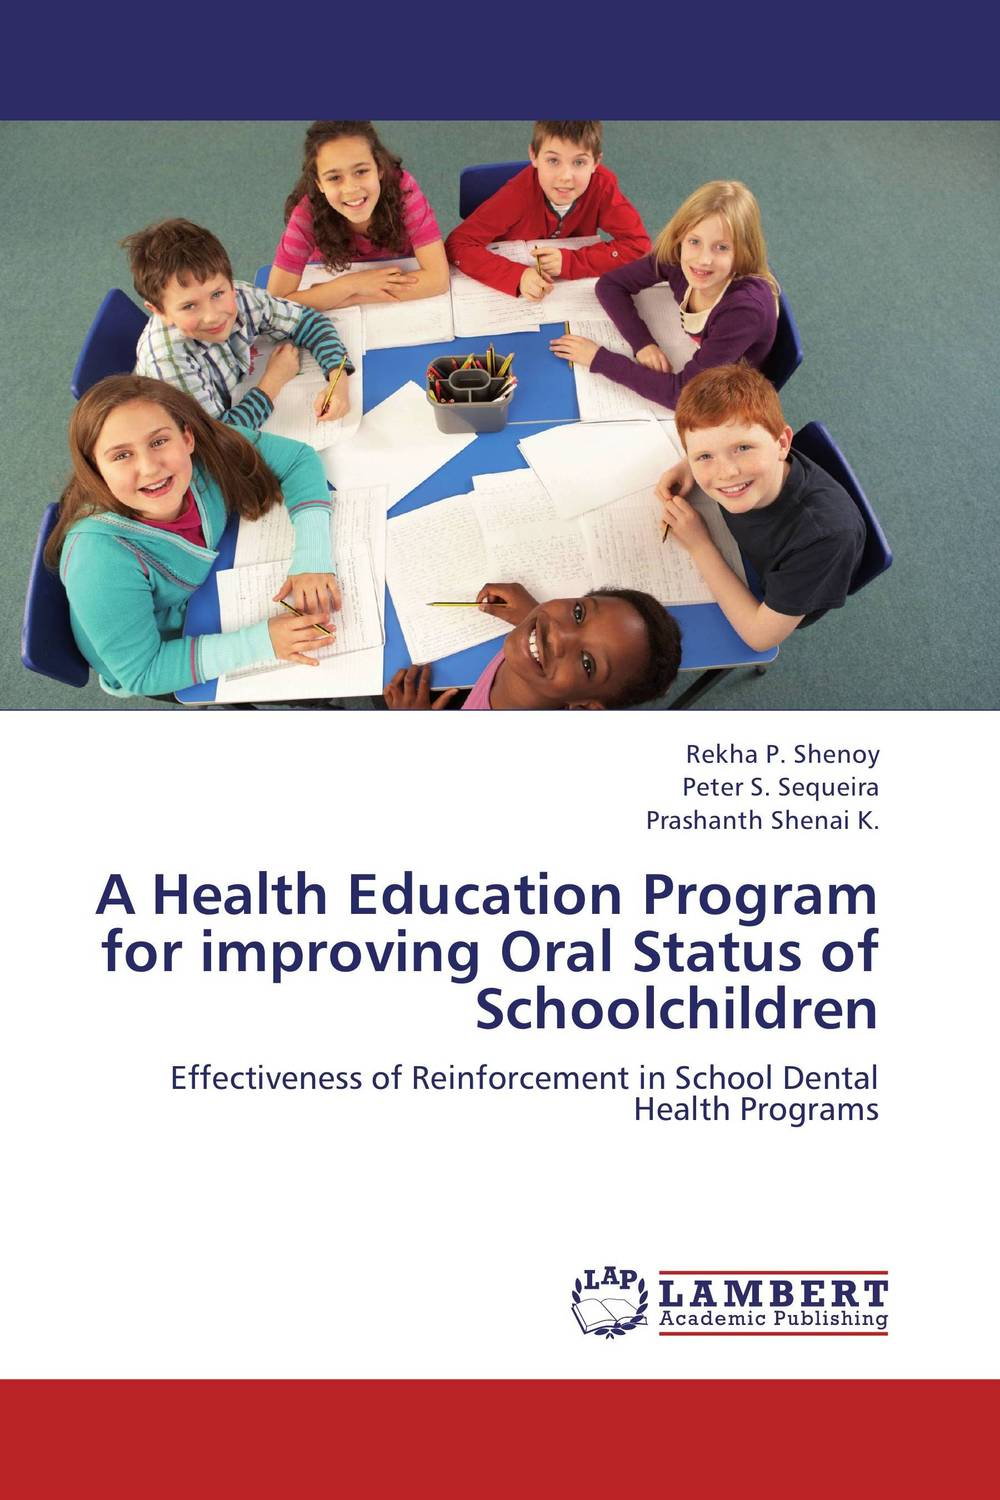 A Health Education Program for improving Oral Status of Schoolchildren